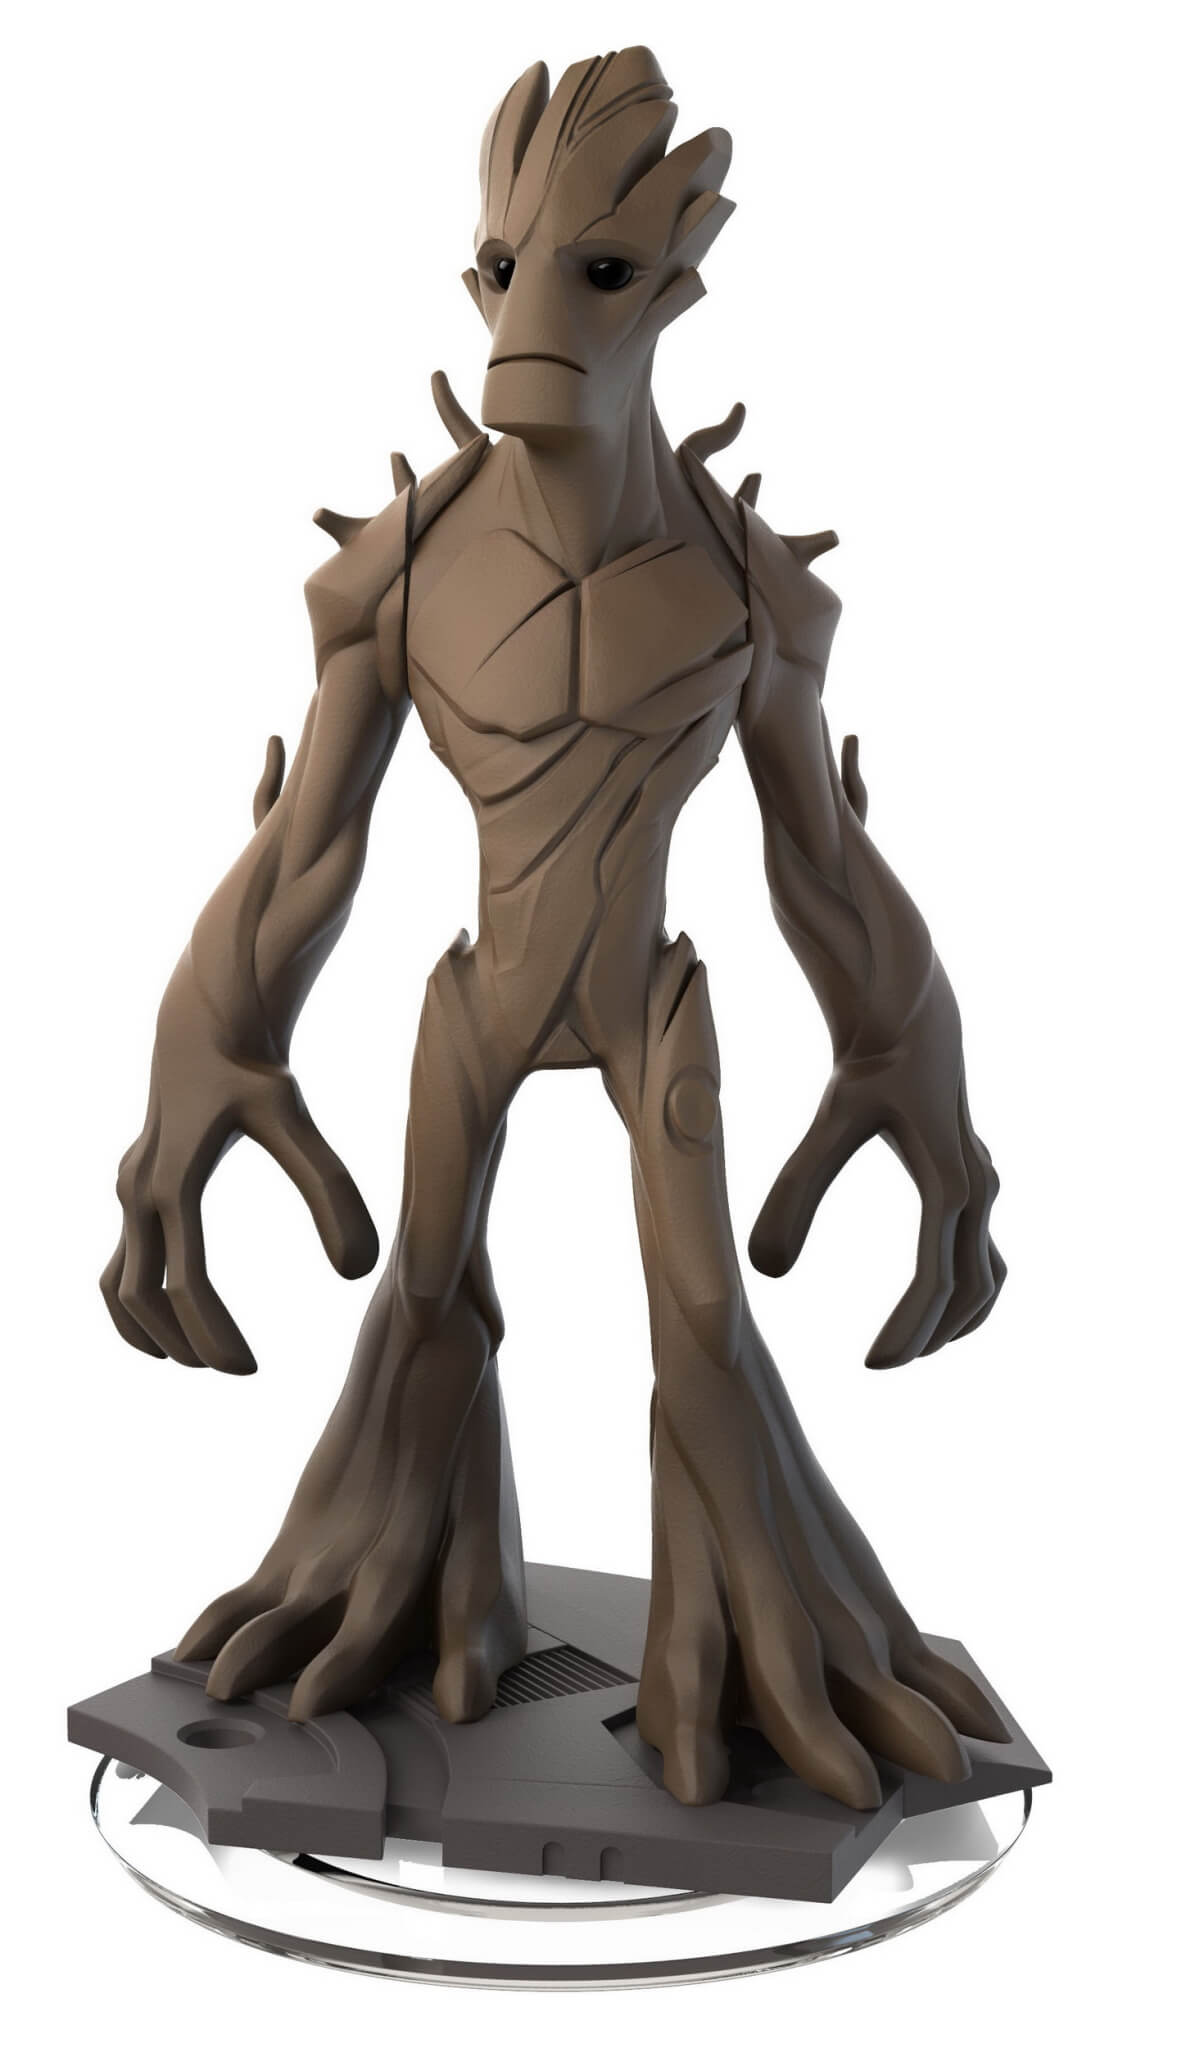 http://infinityinquirer.com/wp-content/uploads/2014/07/gog_groot_package_final_basetransparent_r01.jpg